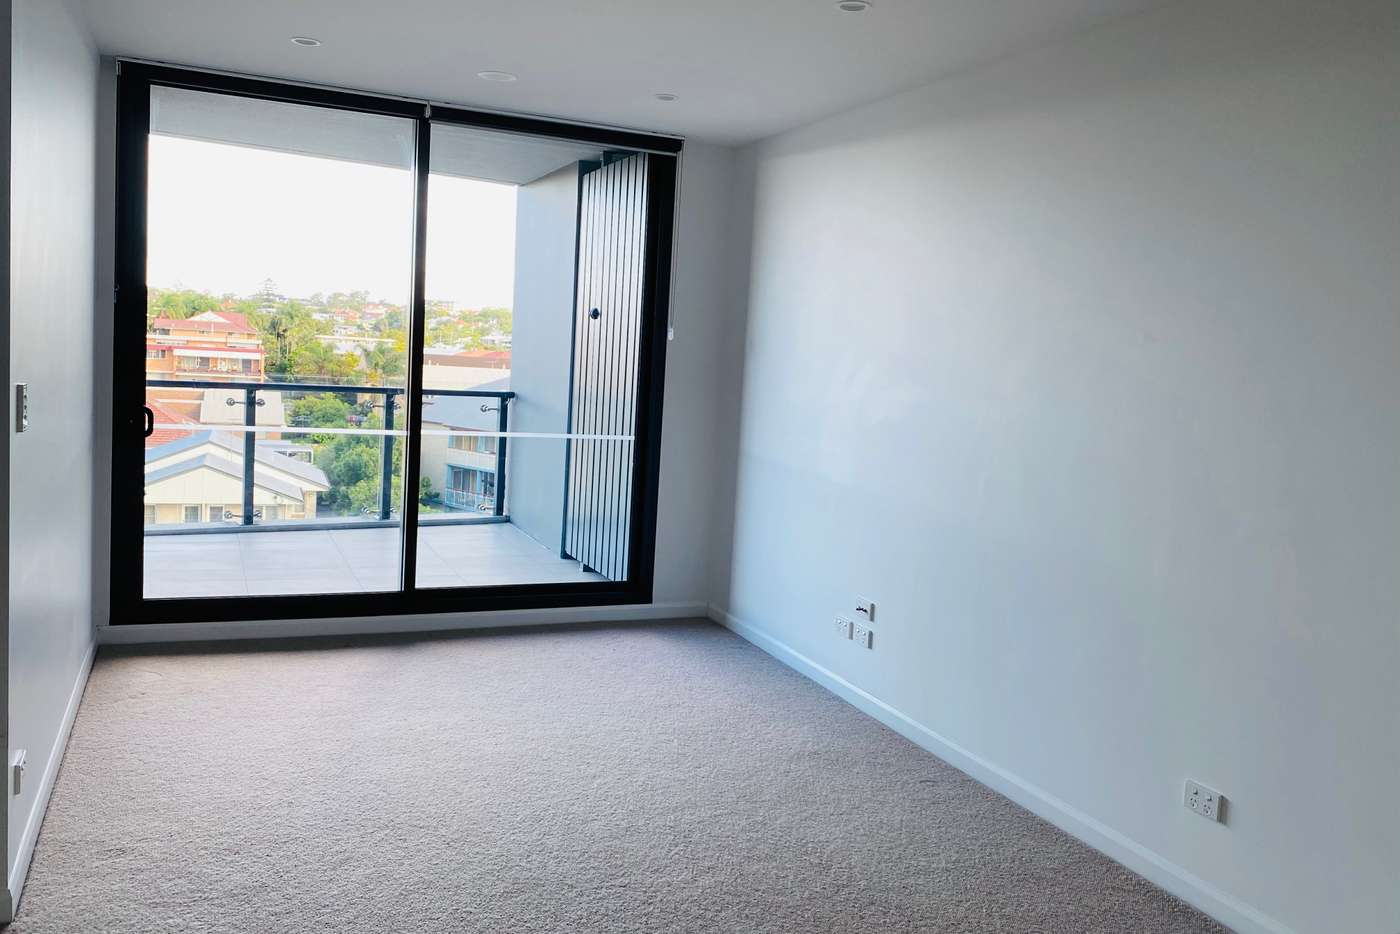 Sixth view of Homely apartment listing, 30606/300 Old Cleveland Road, Coorparoo QLD 4151